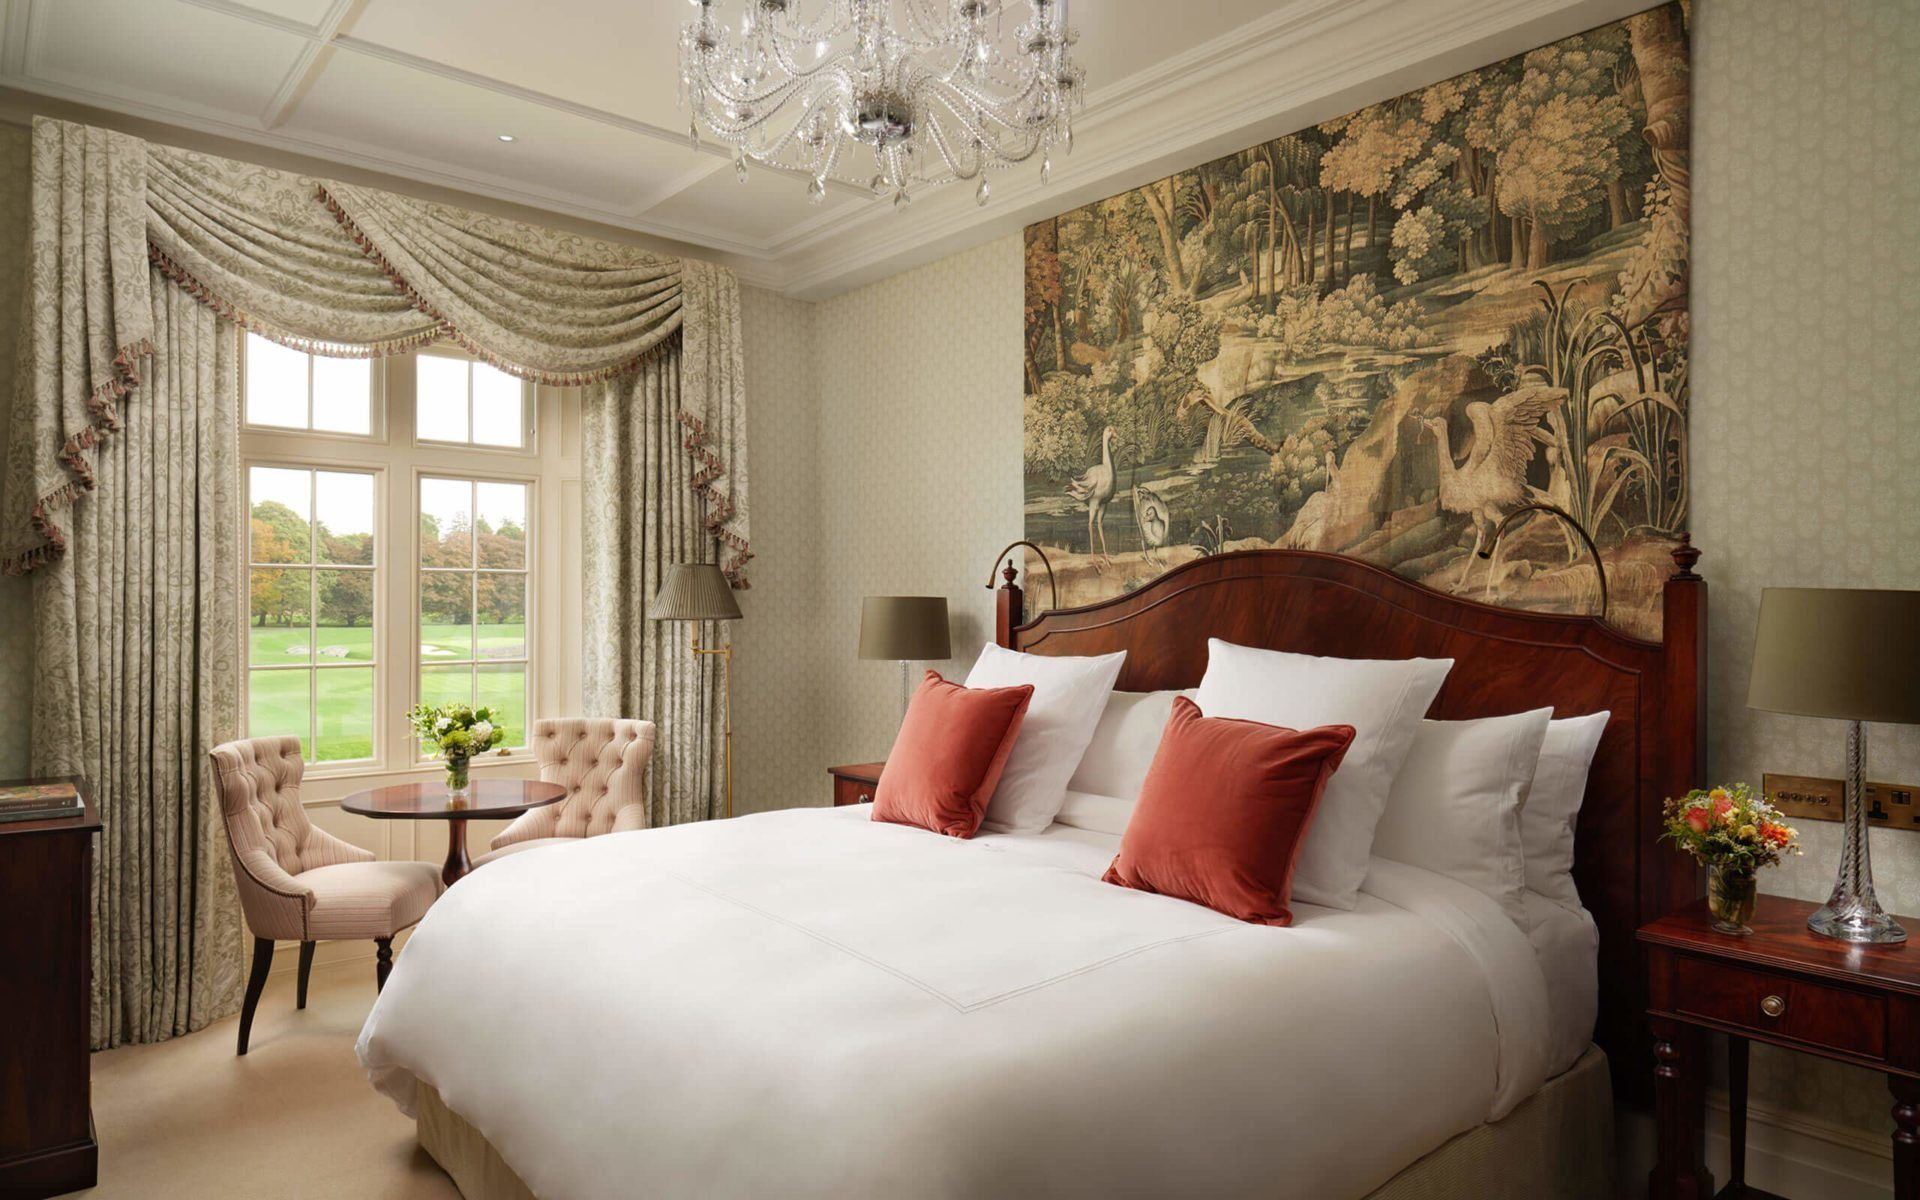 Leave the ordinary life behind in your own charming Adare Manor ...